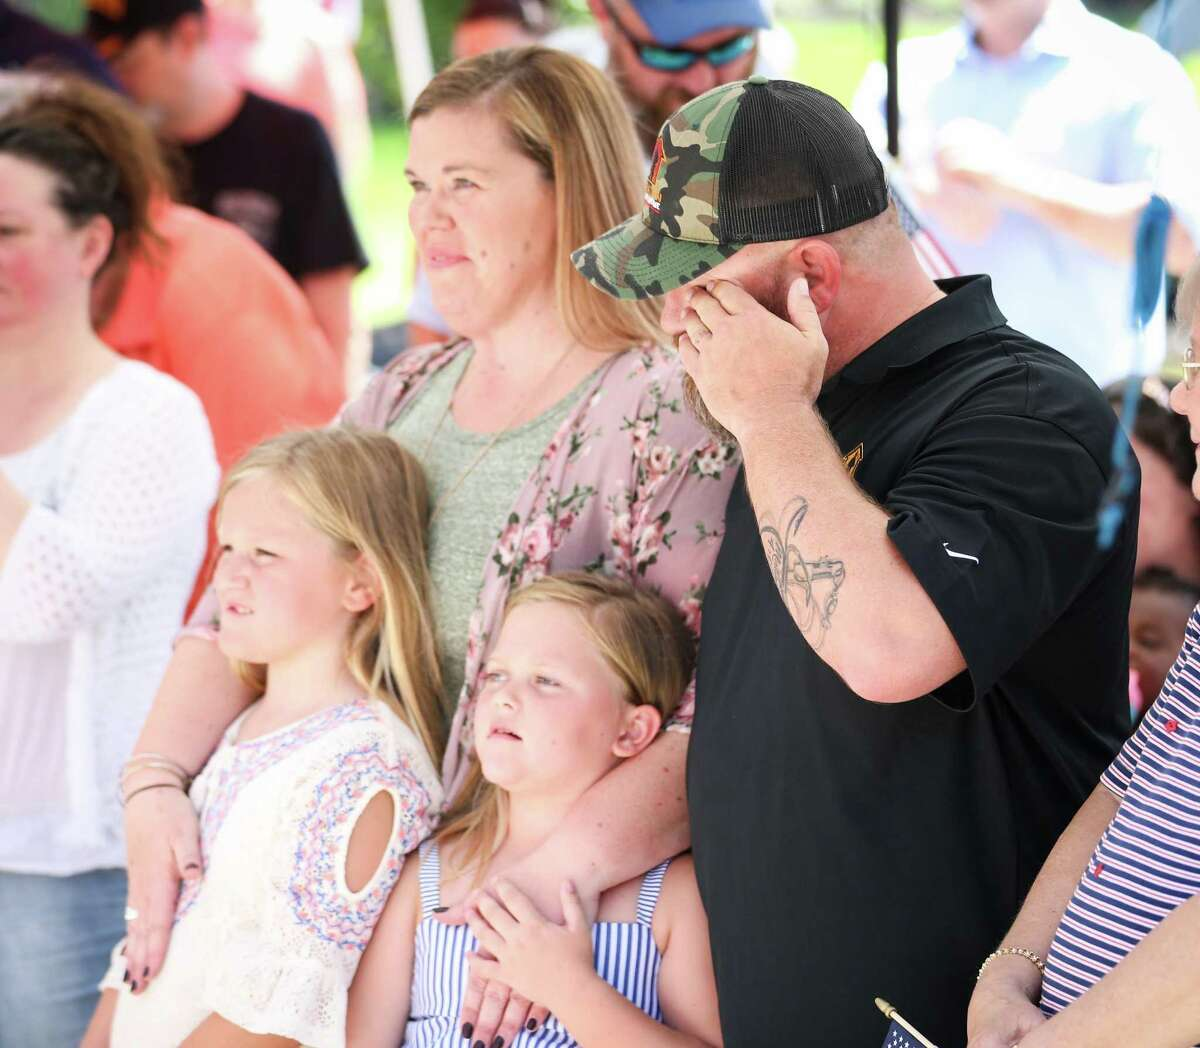 Army veteran John Kadleck, accompanied by his wife Erin, and their three children, becomes emotional during the Operation Finally Home house unveiling on Friday, June 8, 2018, in The Woodlands.